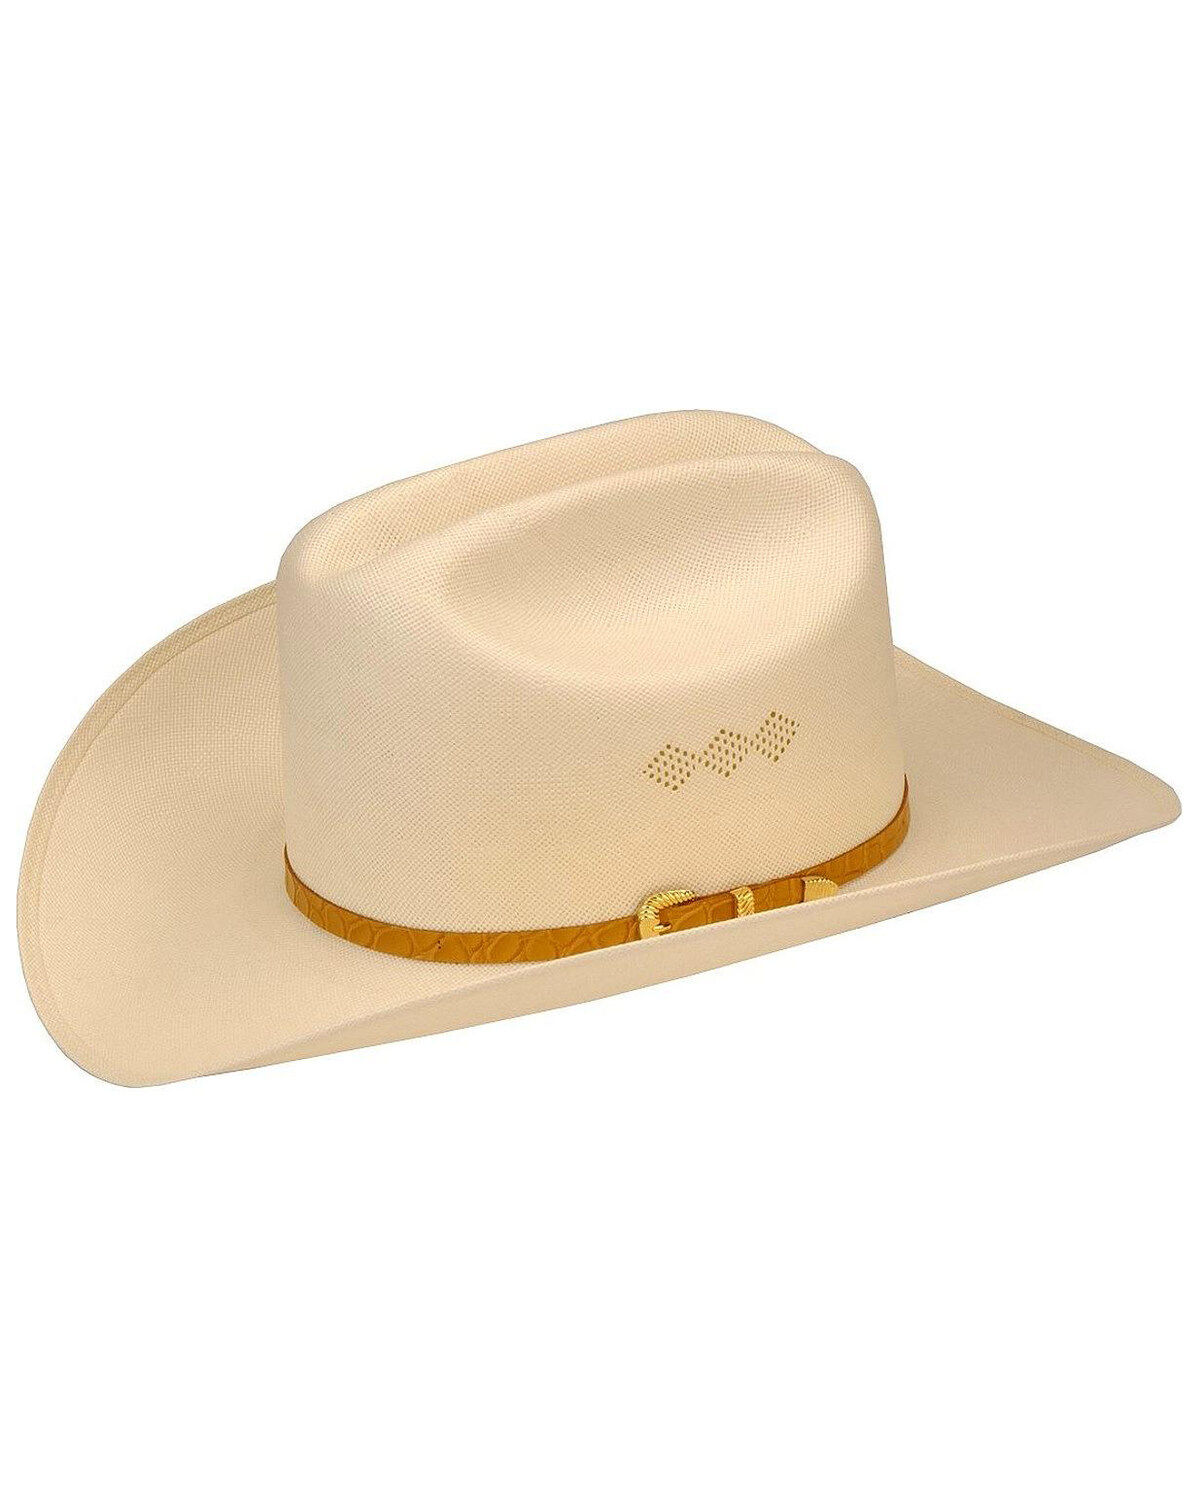 a55a25e5 Men's Straw Western Hats